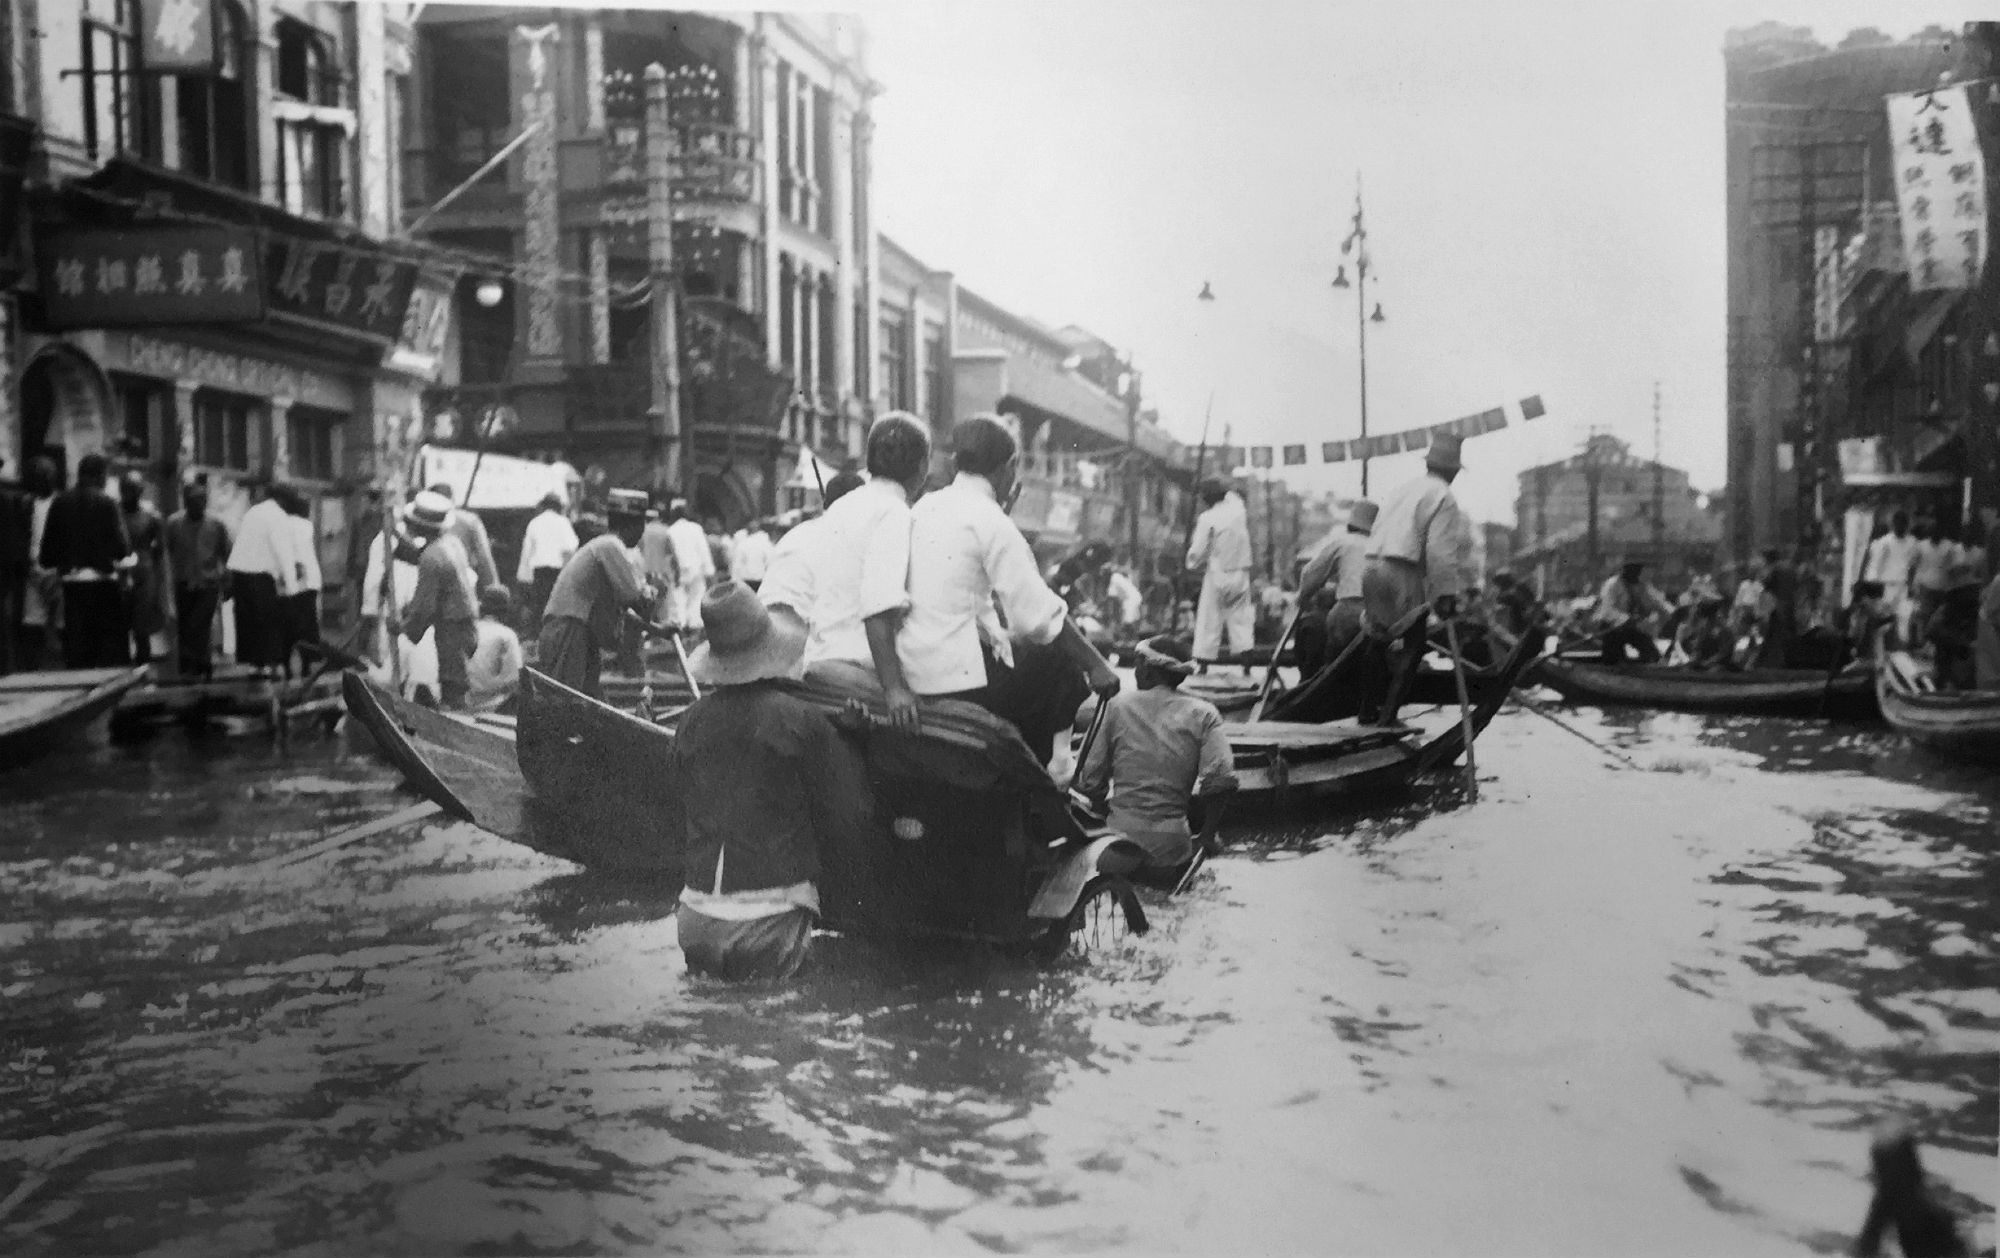 Rickshaw pullers working the flooded street